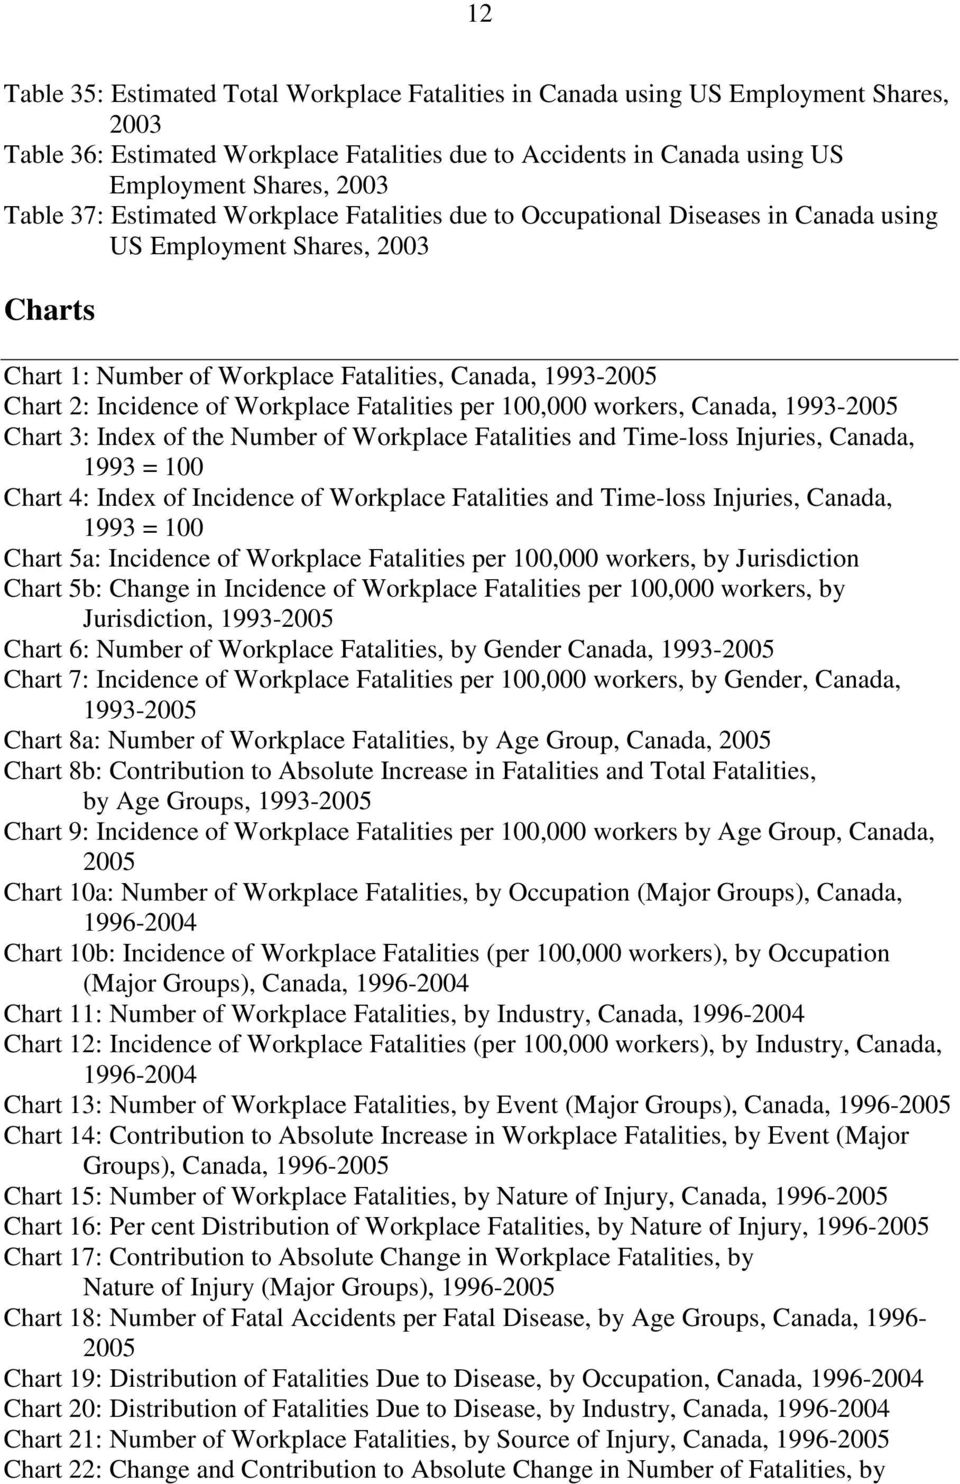 Workplace Fatalities per 100,000 workers, Canada, 1993-2005 Chart 3: Index of the Number of Workplace Fatalities and Time-loss Injuries, Canada, 1993 = 100 Chart 4: Index of Incidence of Workplace